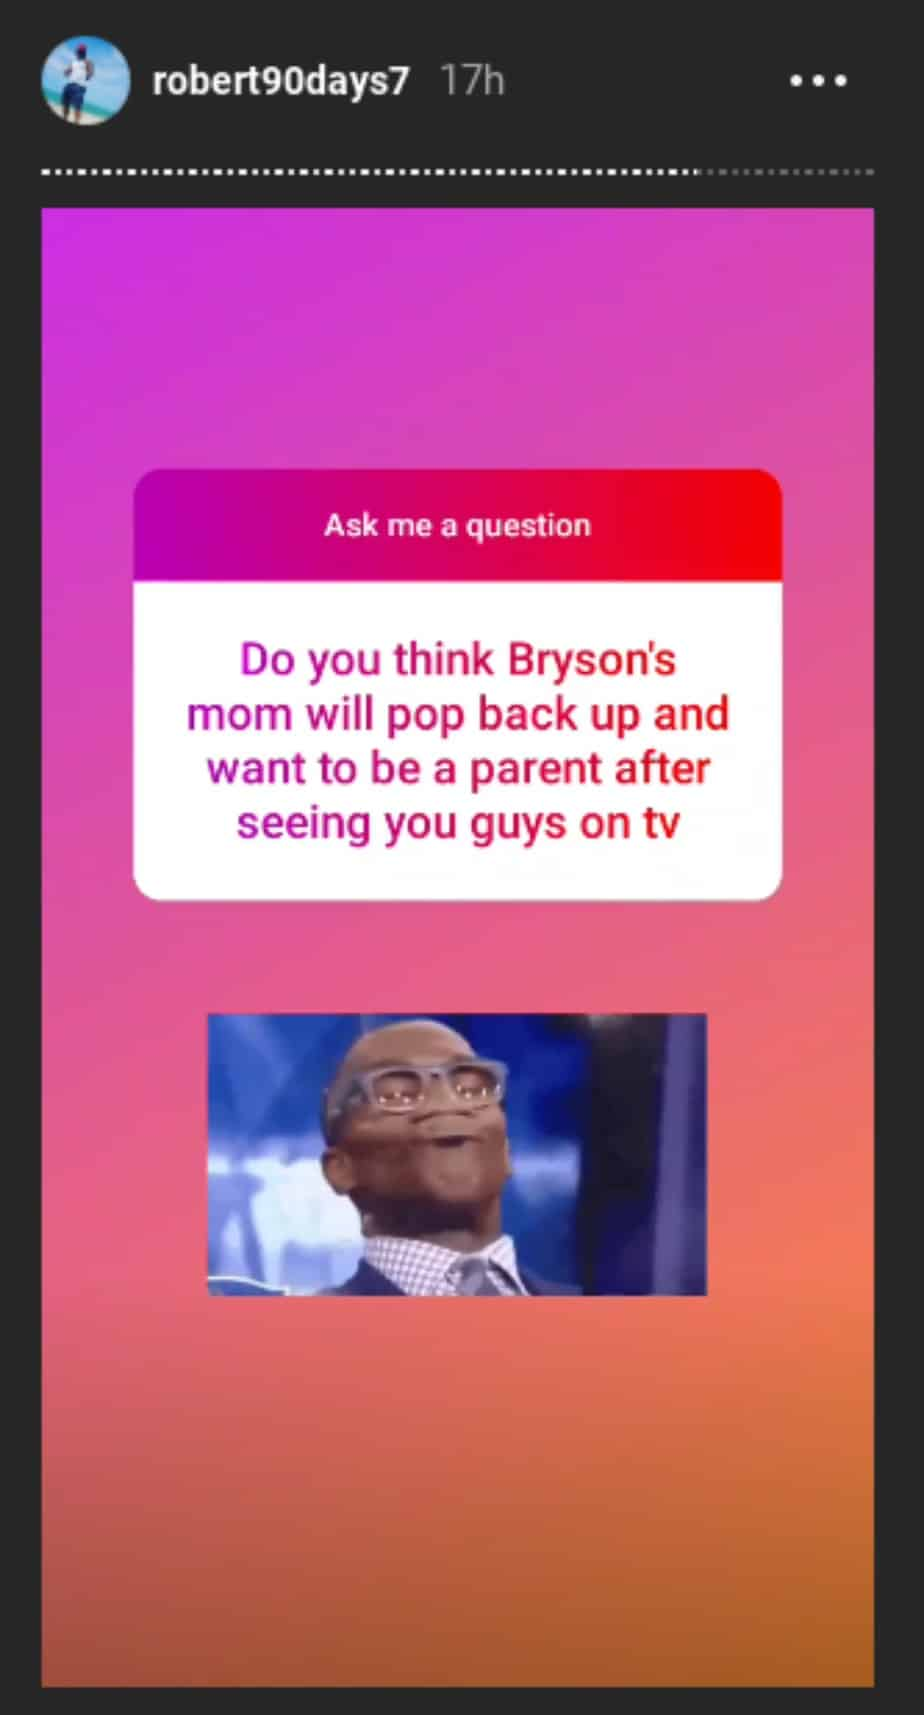 Robert doesn't expect Bryson's mom to return